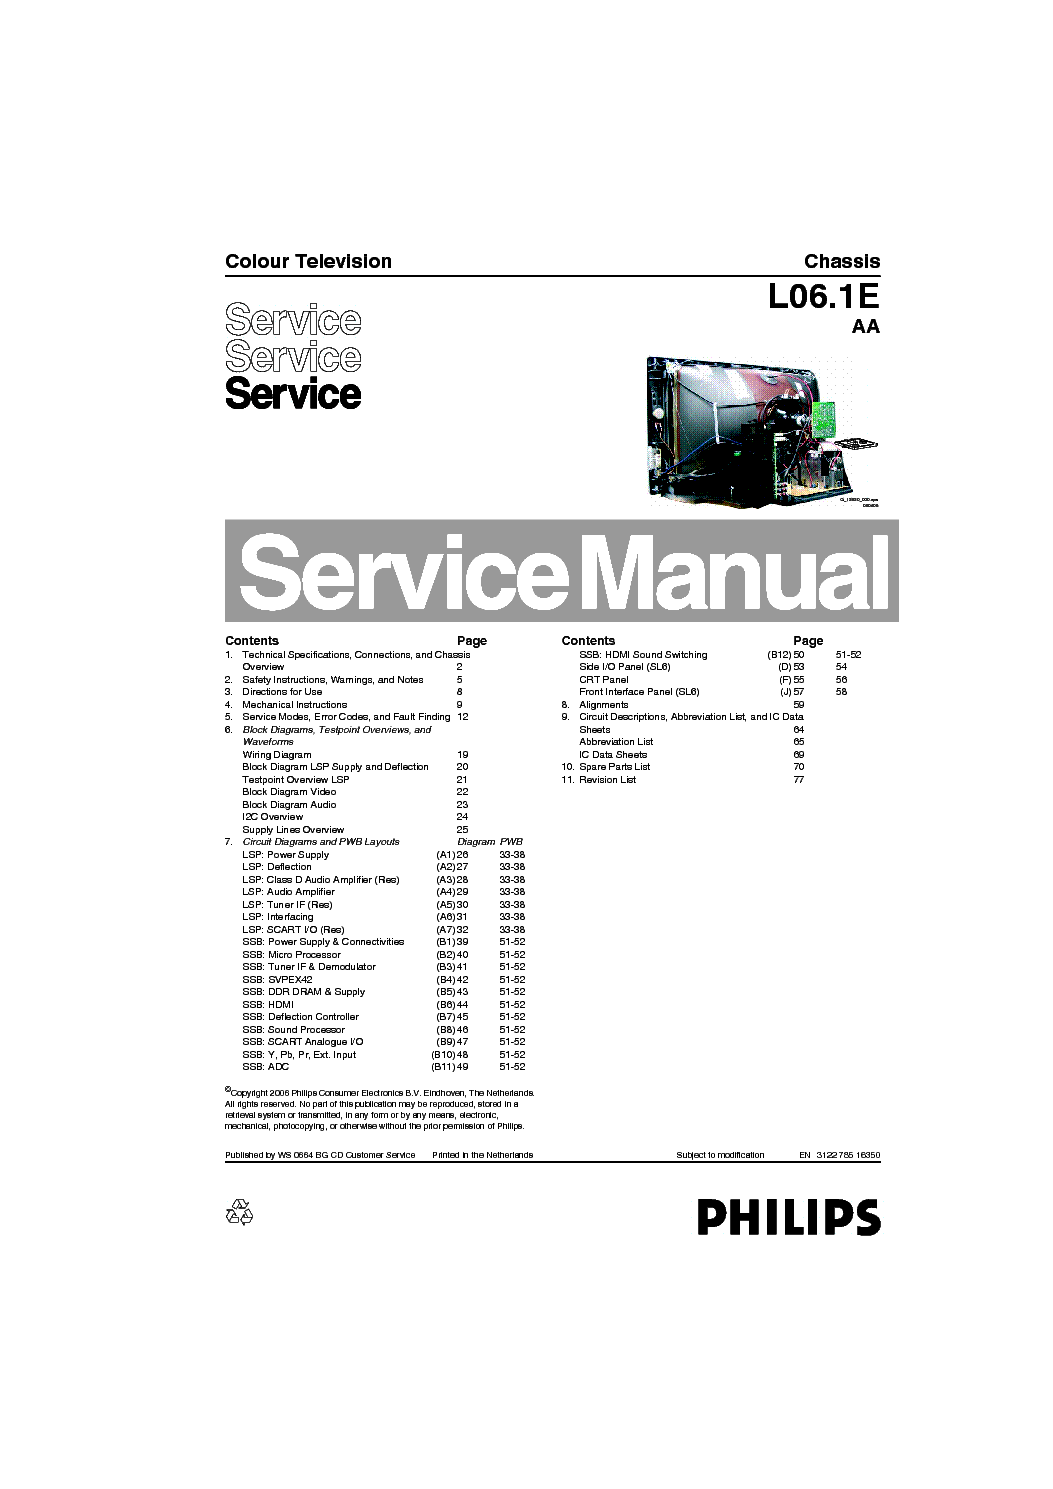 Philips Chassis L06 1e 29pt 12 Service Manual Download